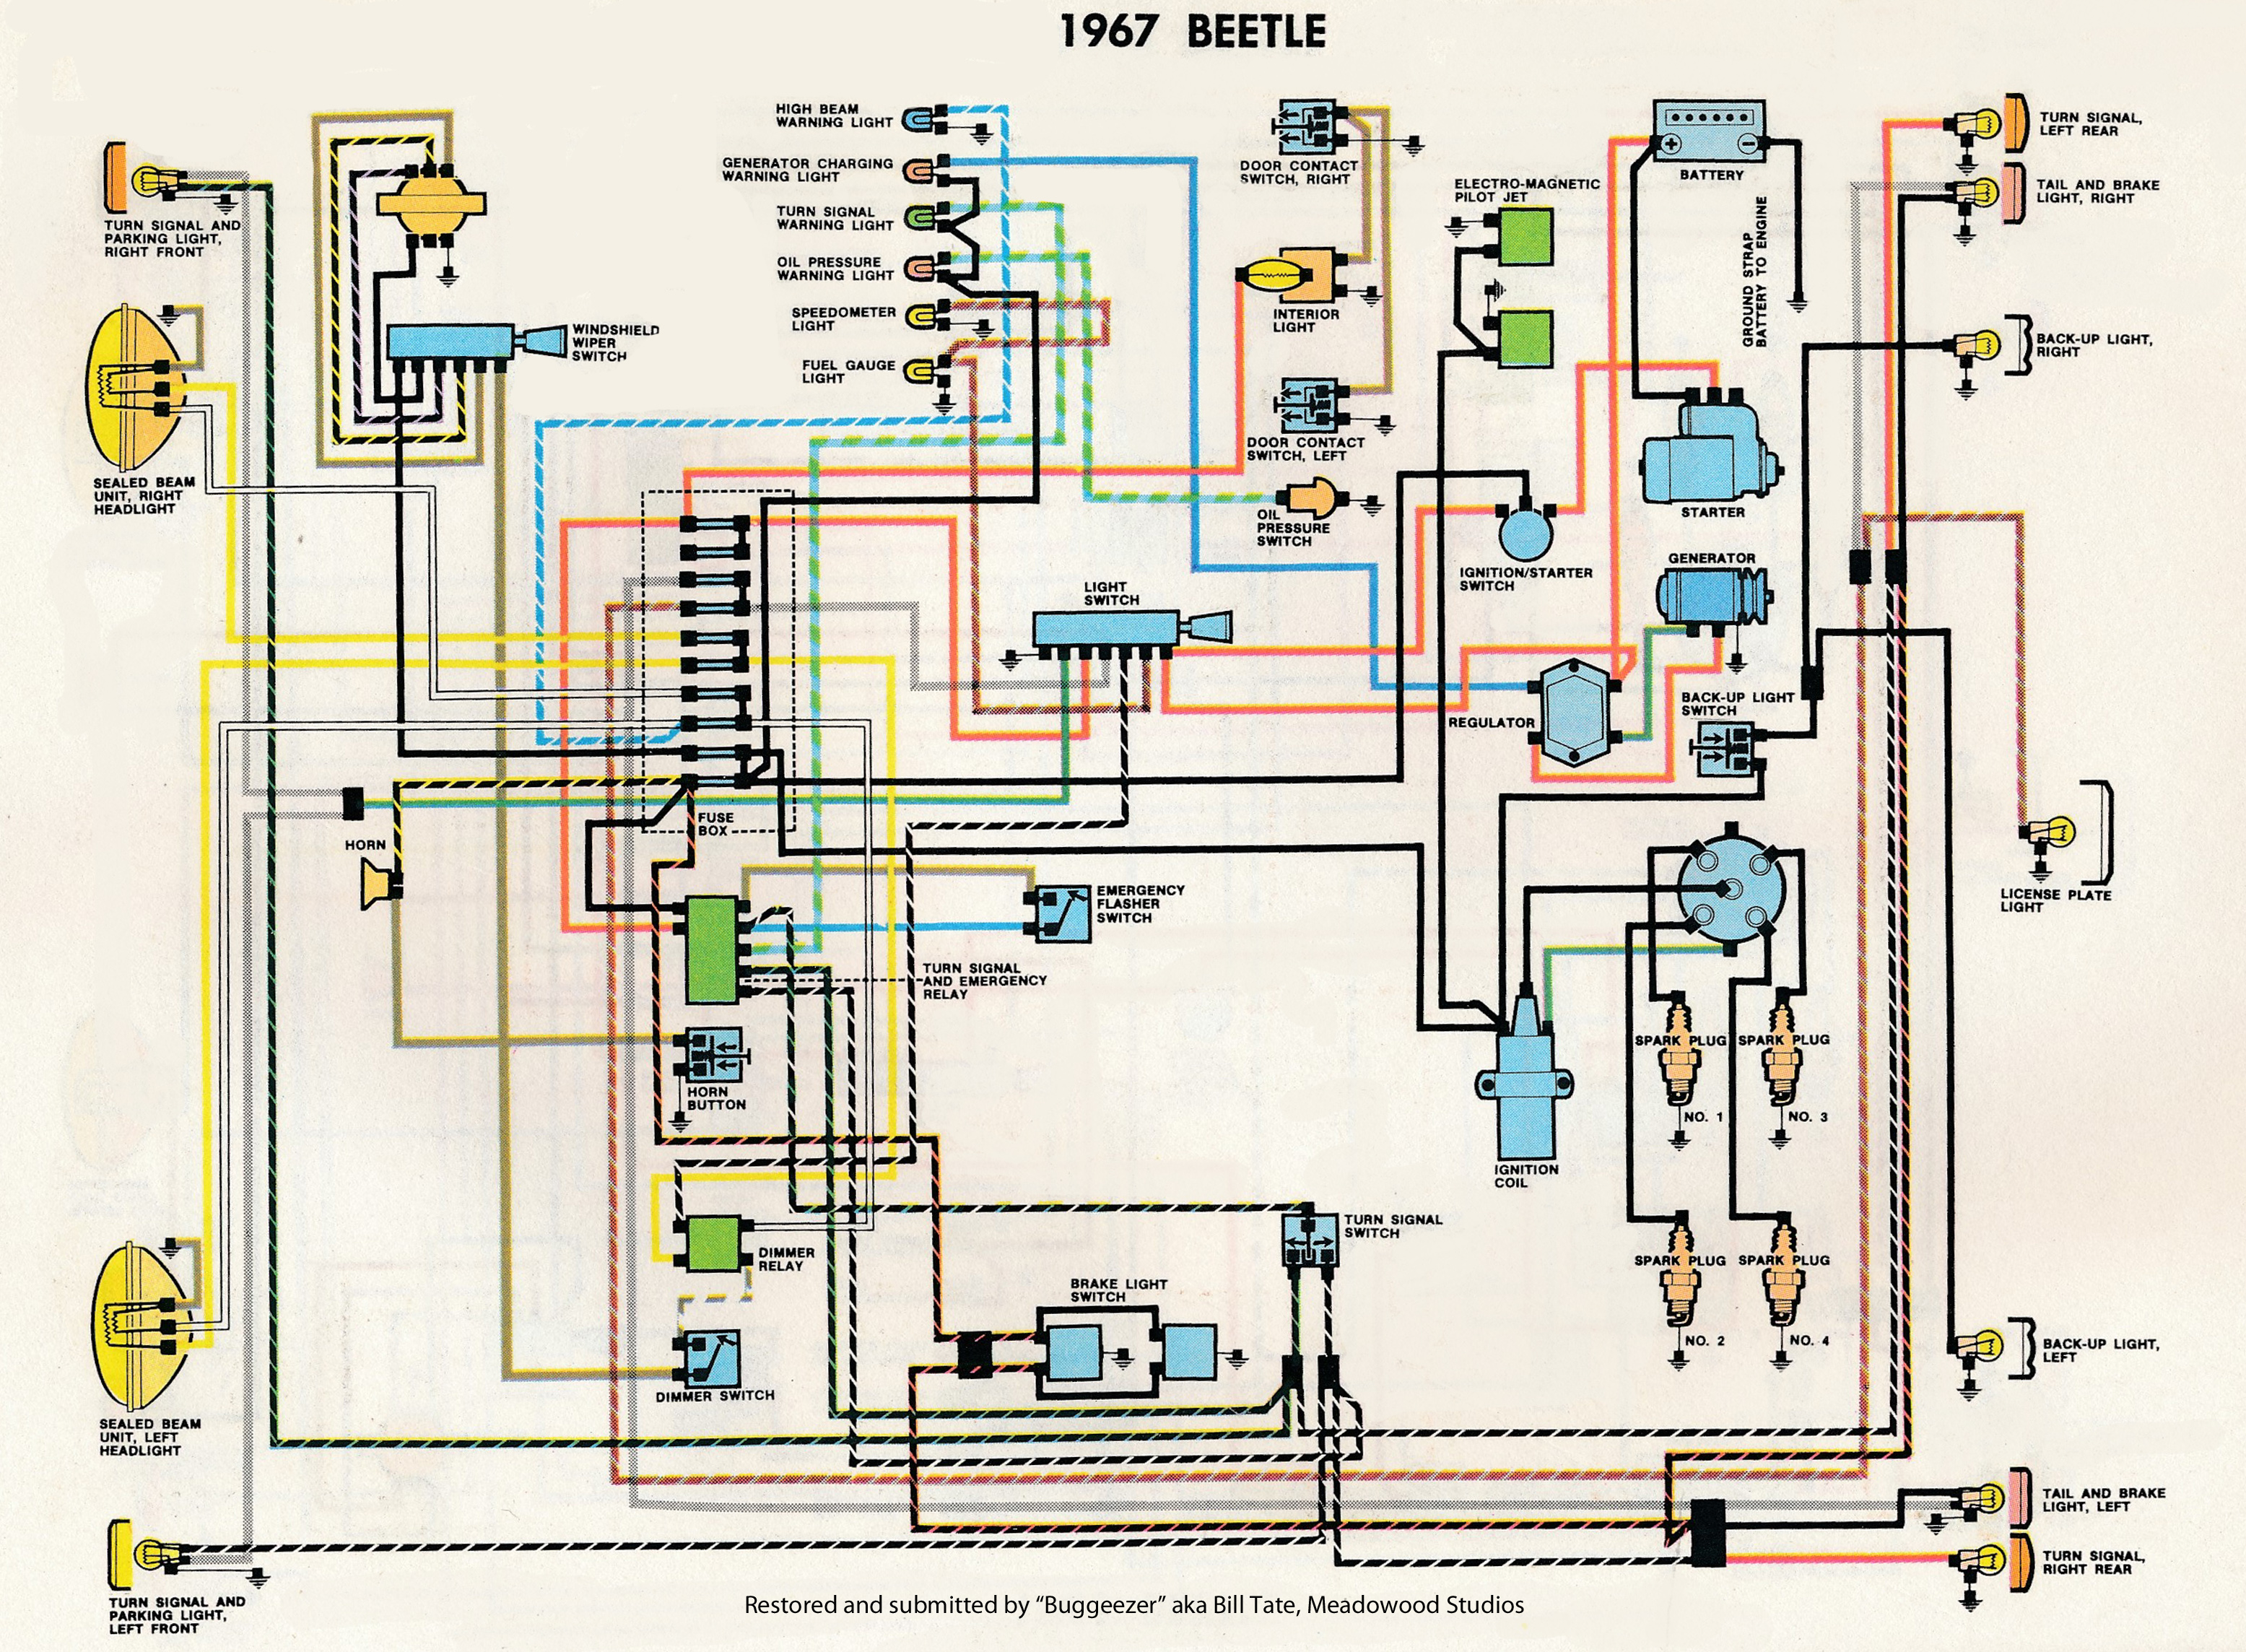 Beetle_1967_Clymers thesamba com type 1 wiring diagrams 1968 corvette wiring diagram free at nearapp.co